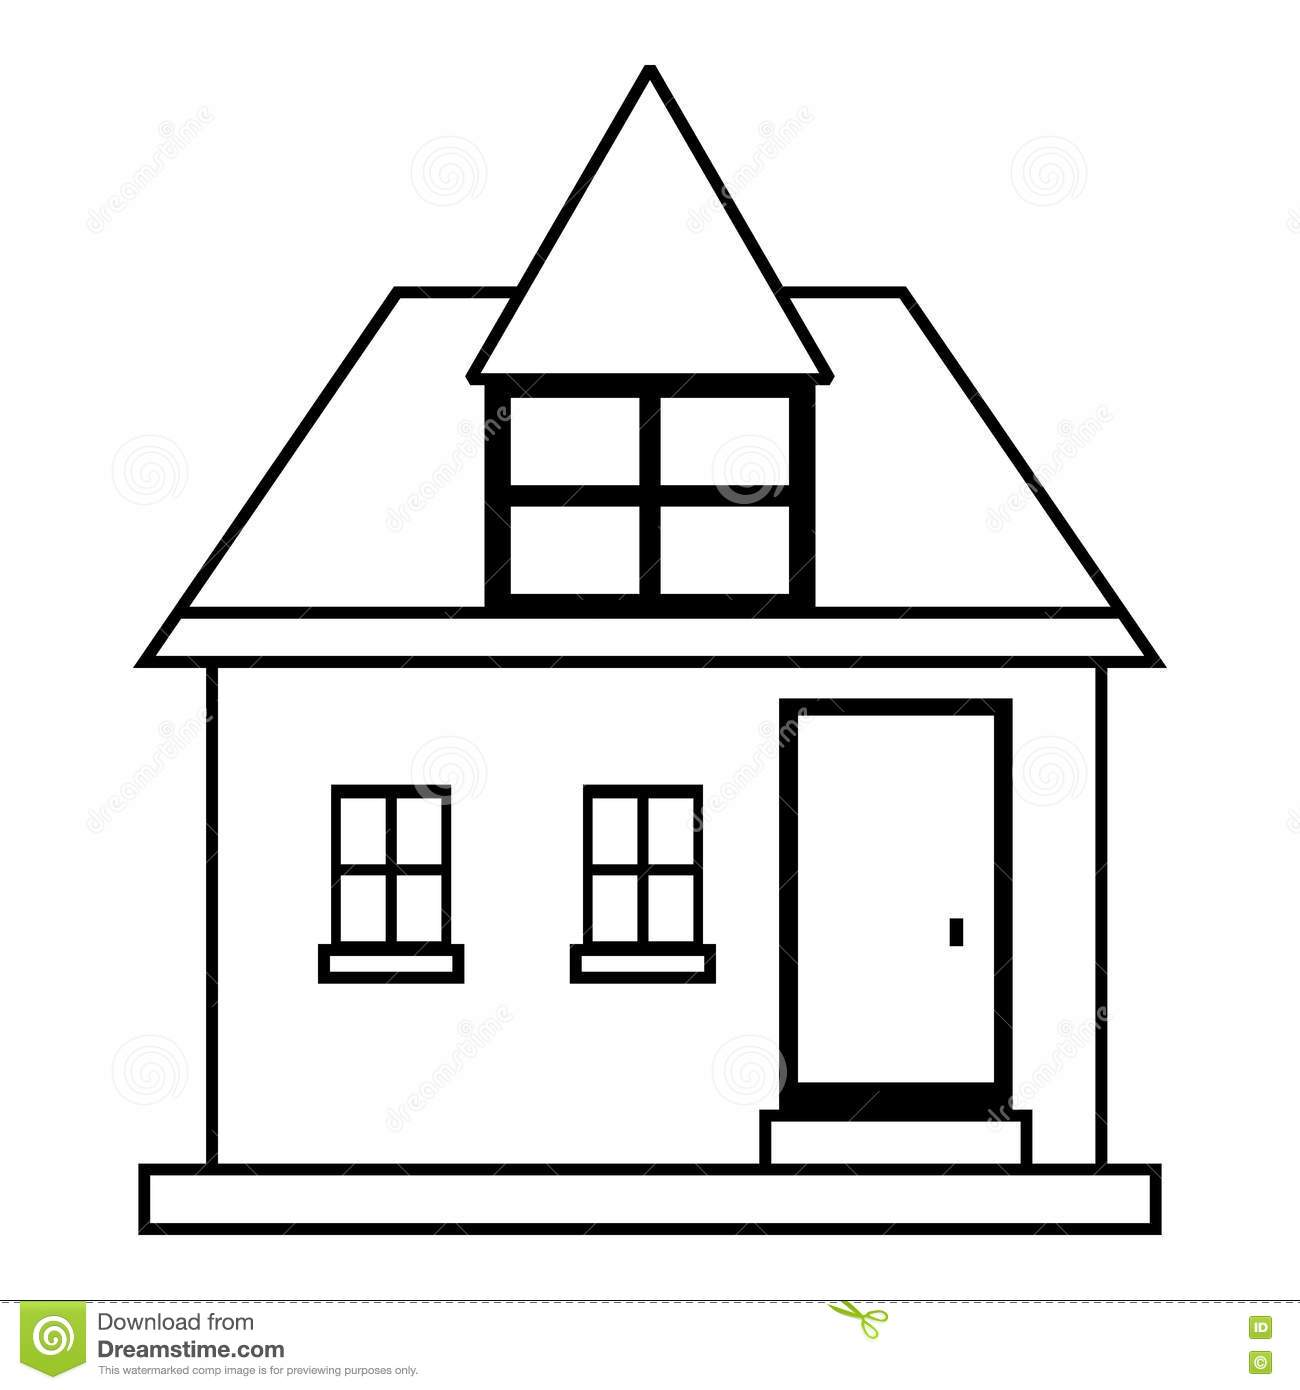 House outline picture - Royalty Free Vector